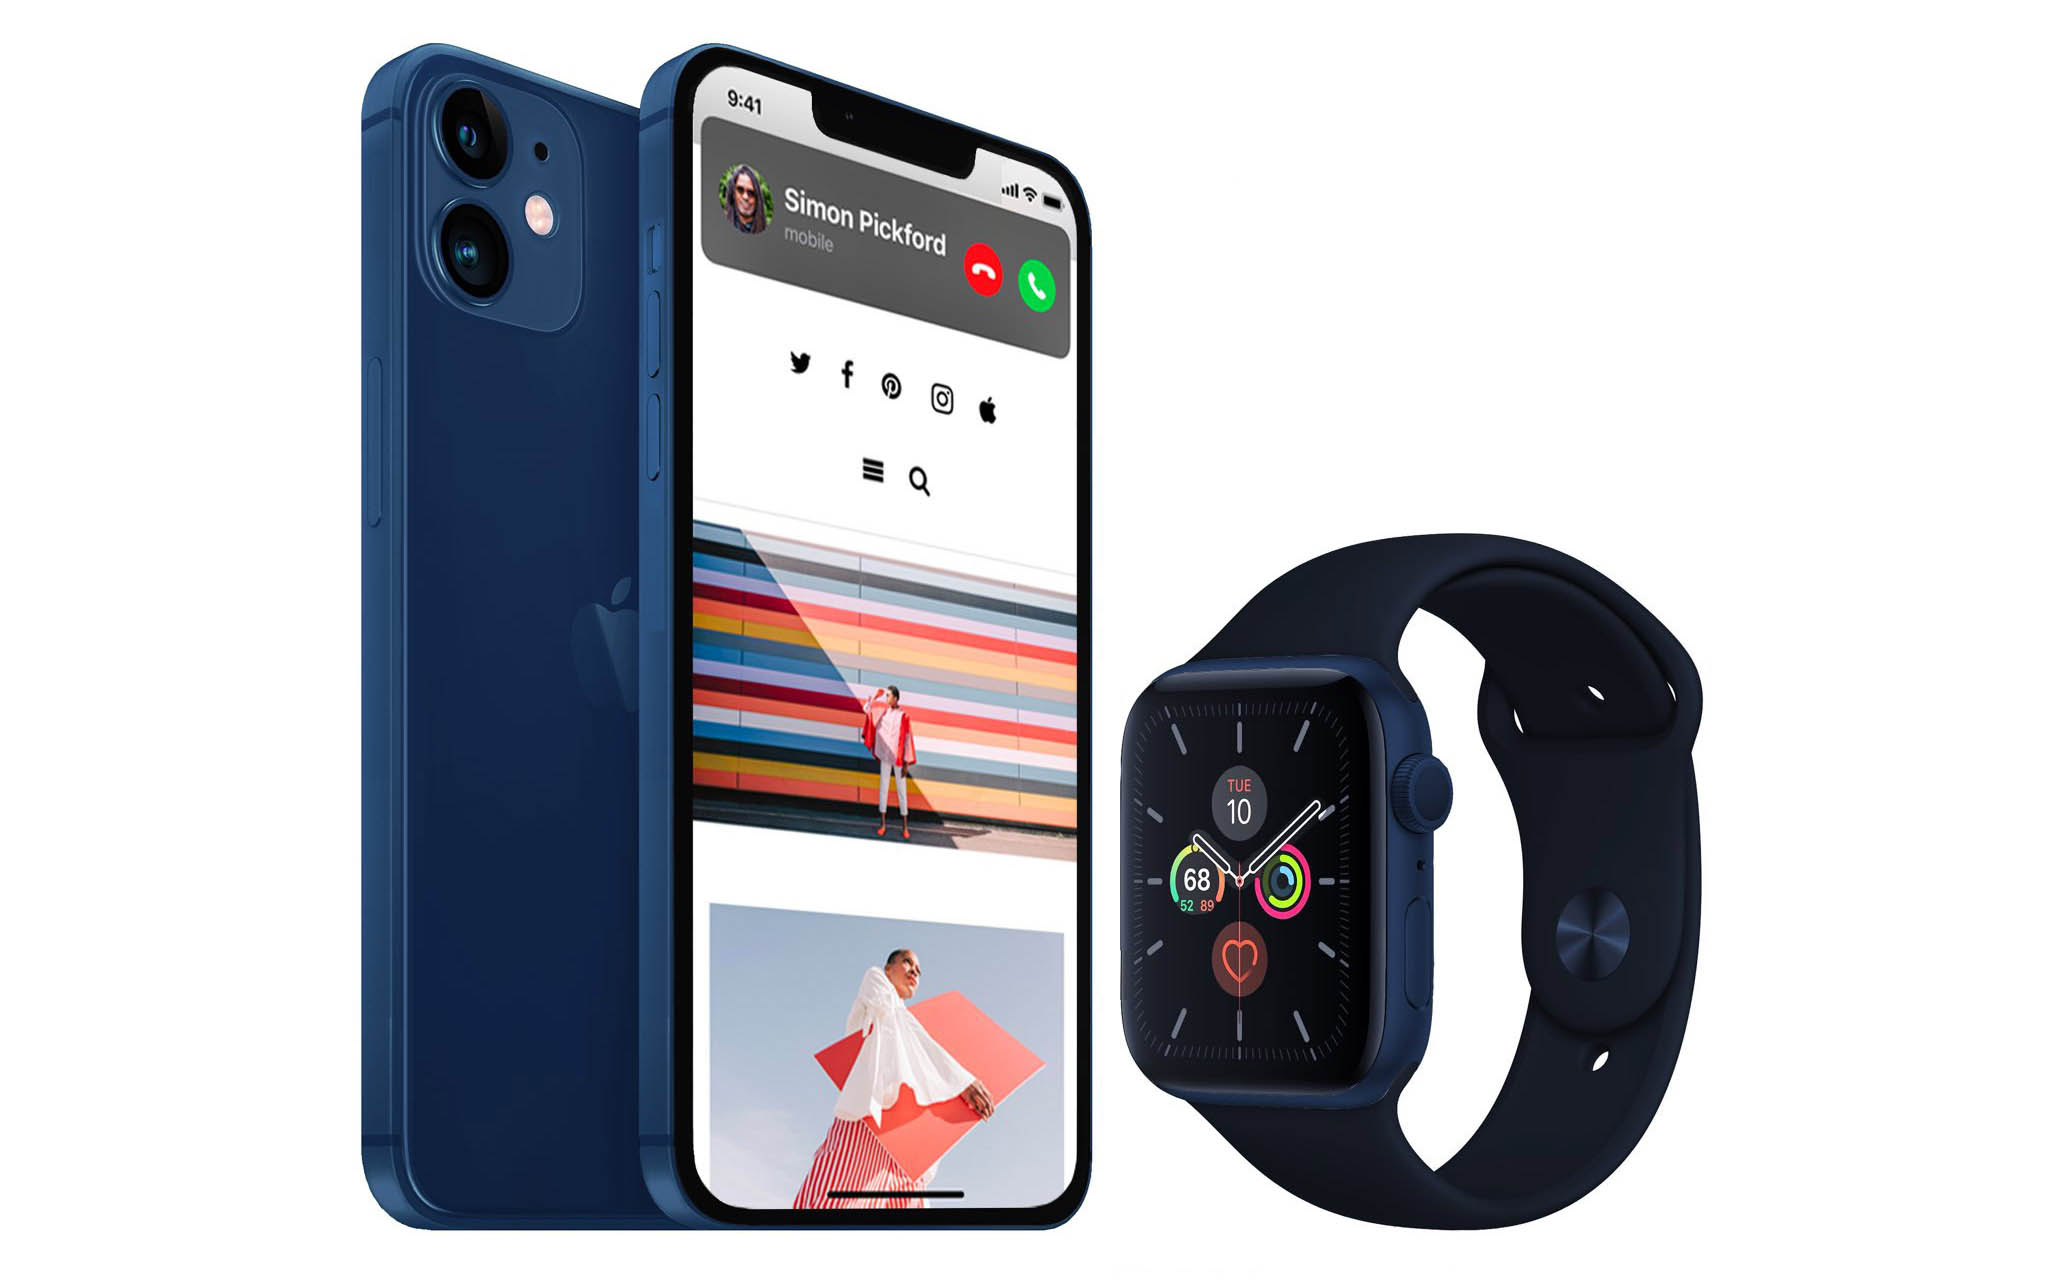 iPhone 12 Max and Apple Watch Series 6 in Navy Blue color concept